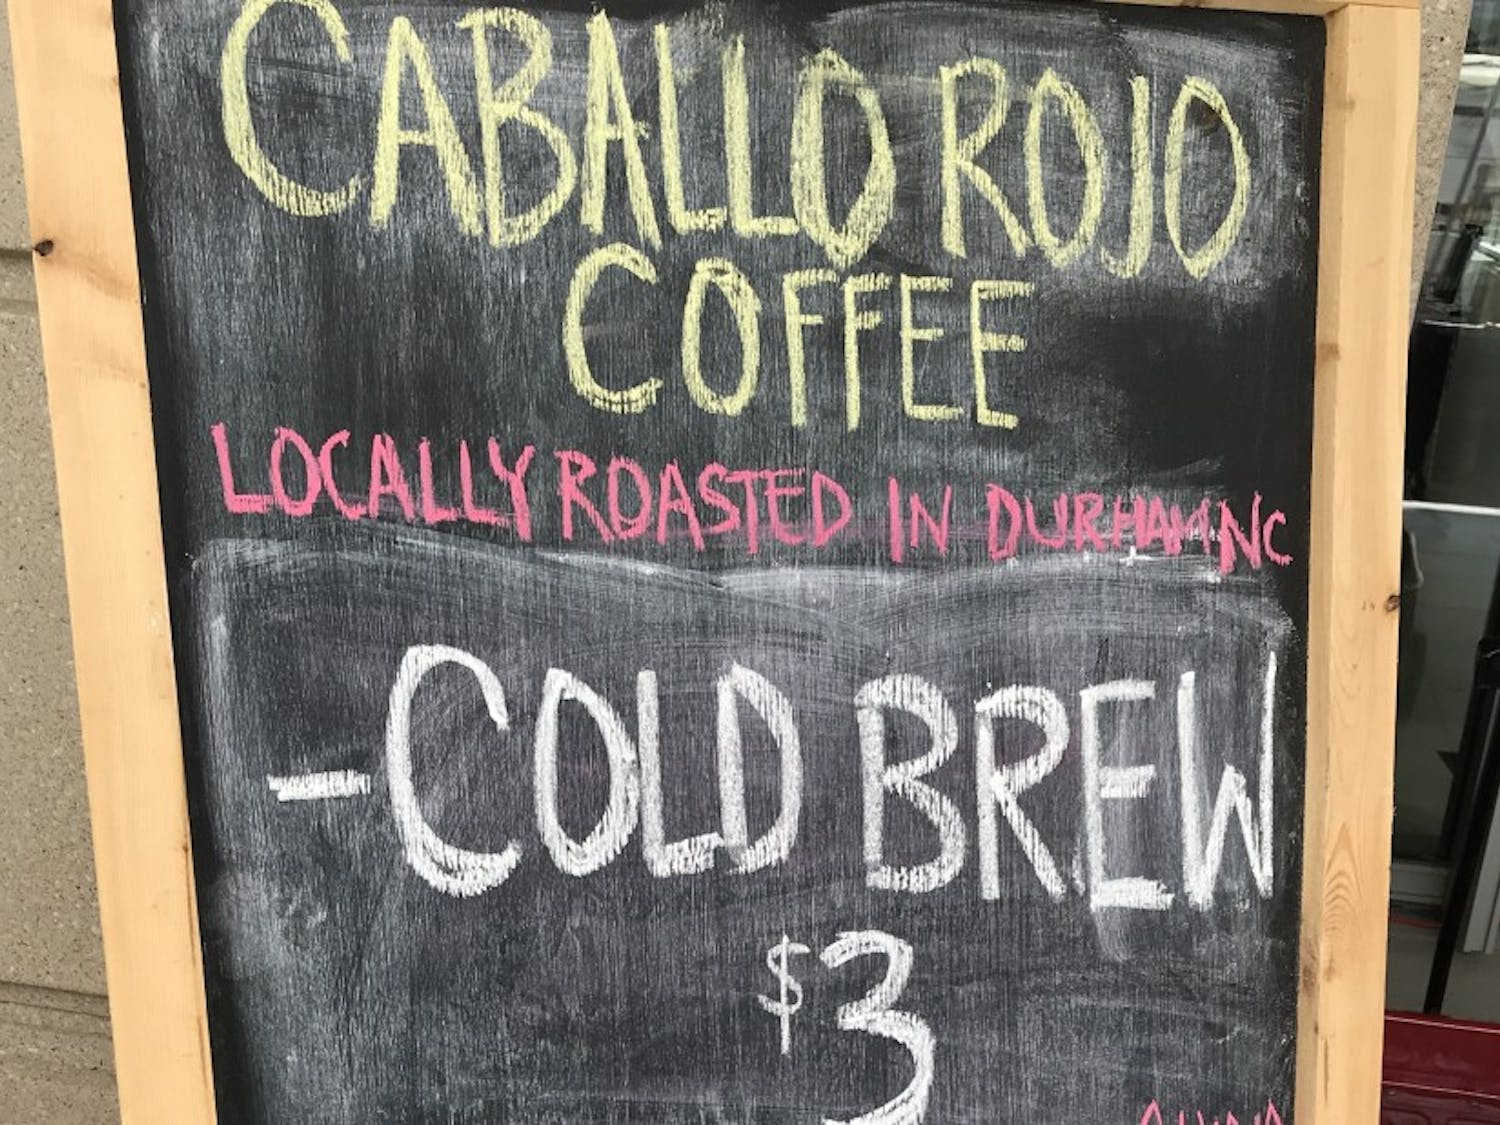 Gabriela Kavanaugh's Caballo Rojo coffee shop attempts to improve the standard of living for farmers and create job opportunities.